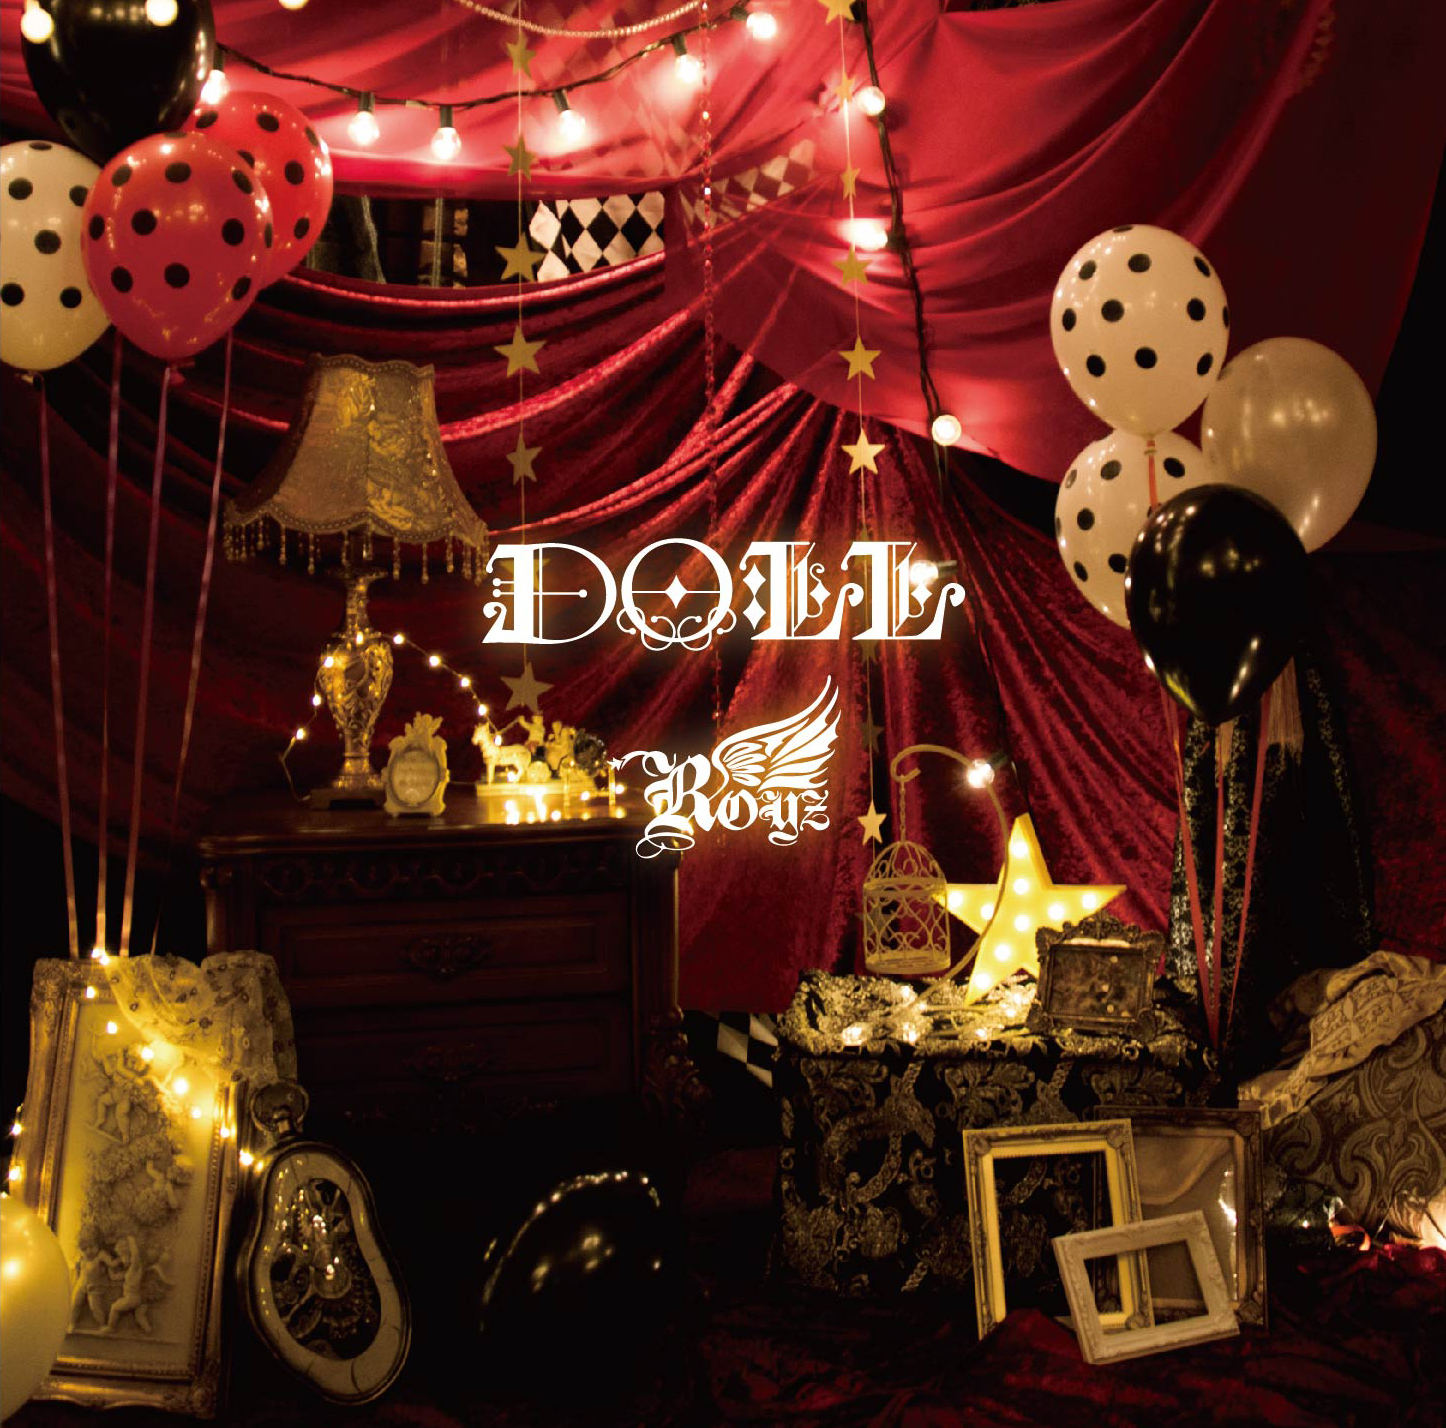 Royz 15th maxi single 「DOLL」Btype